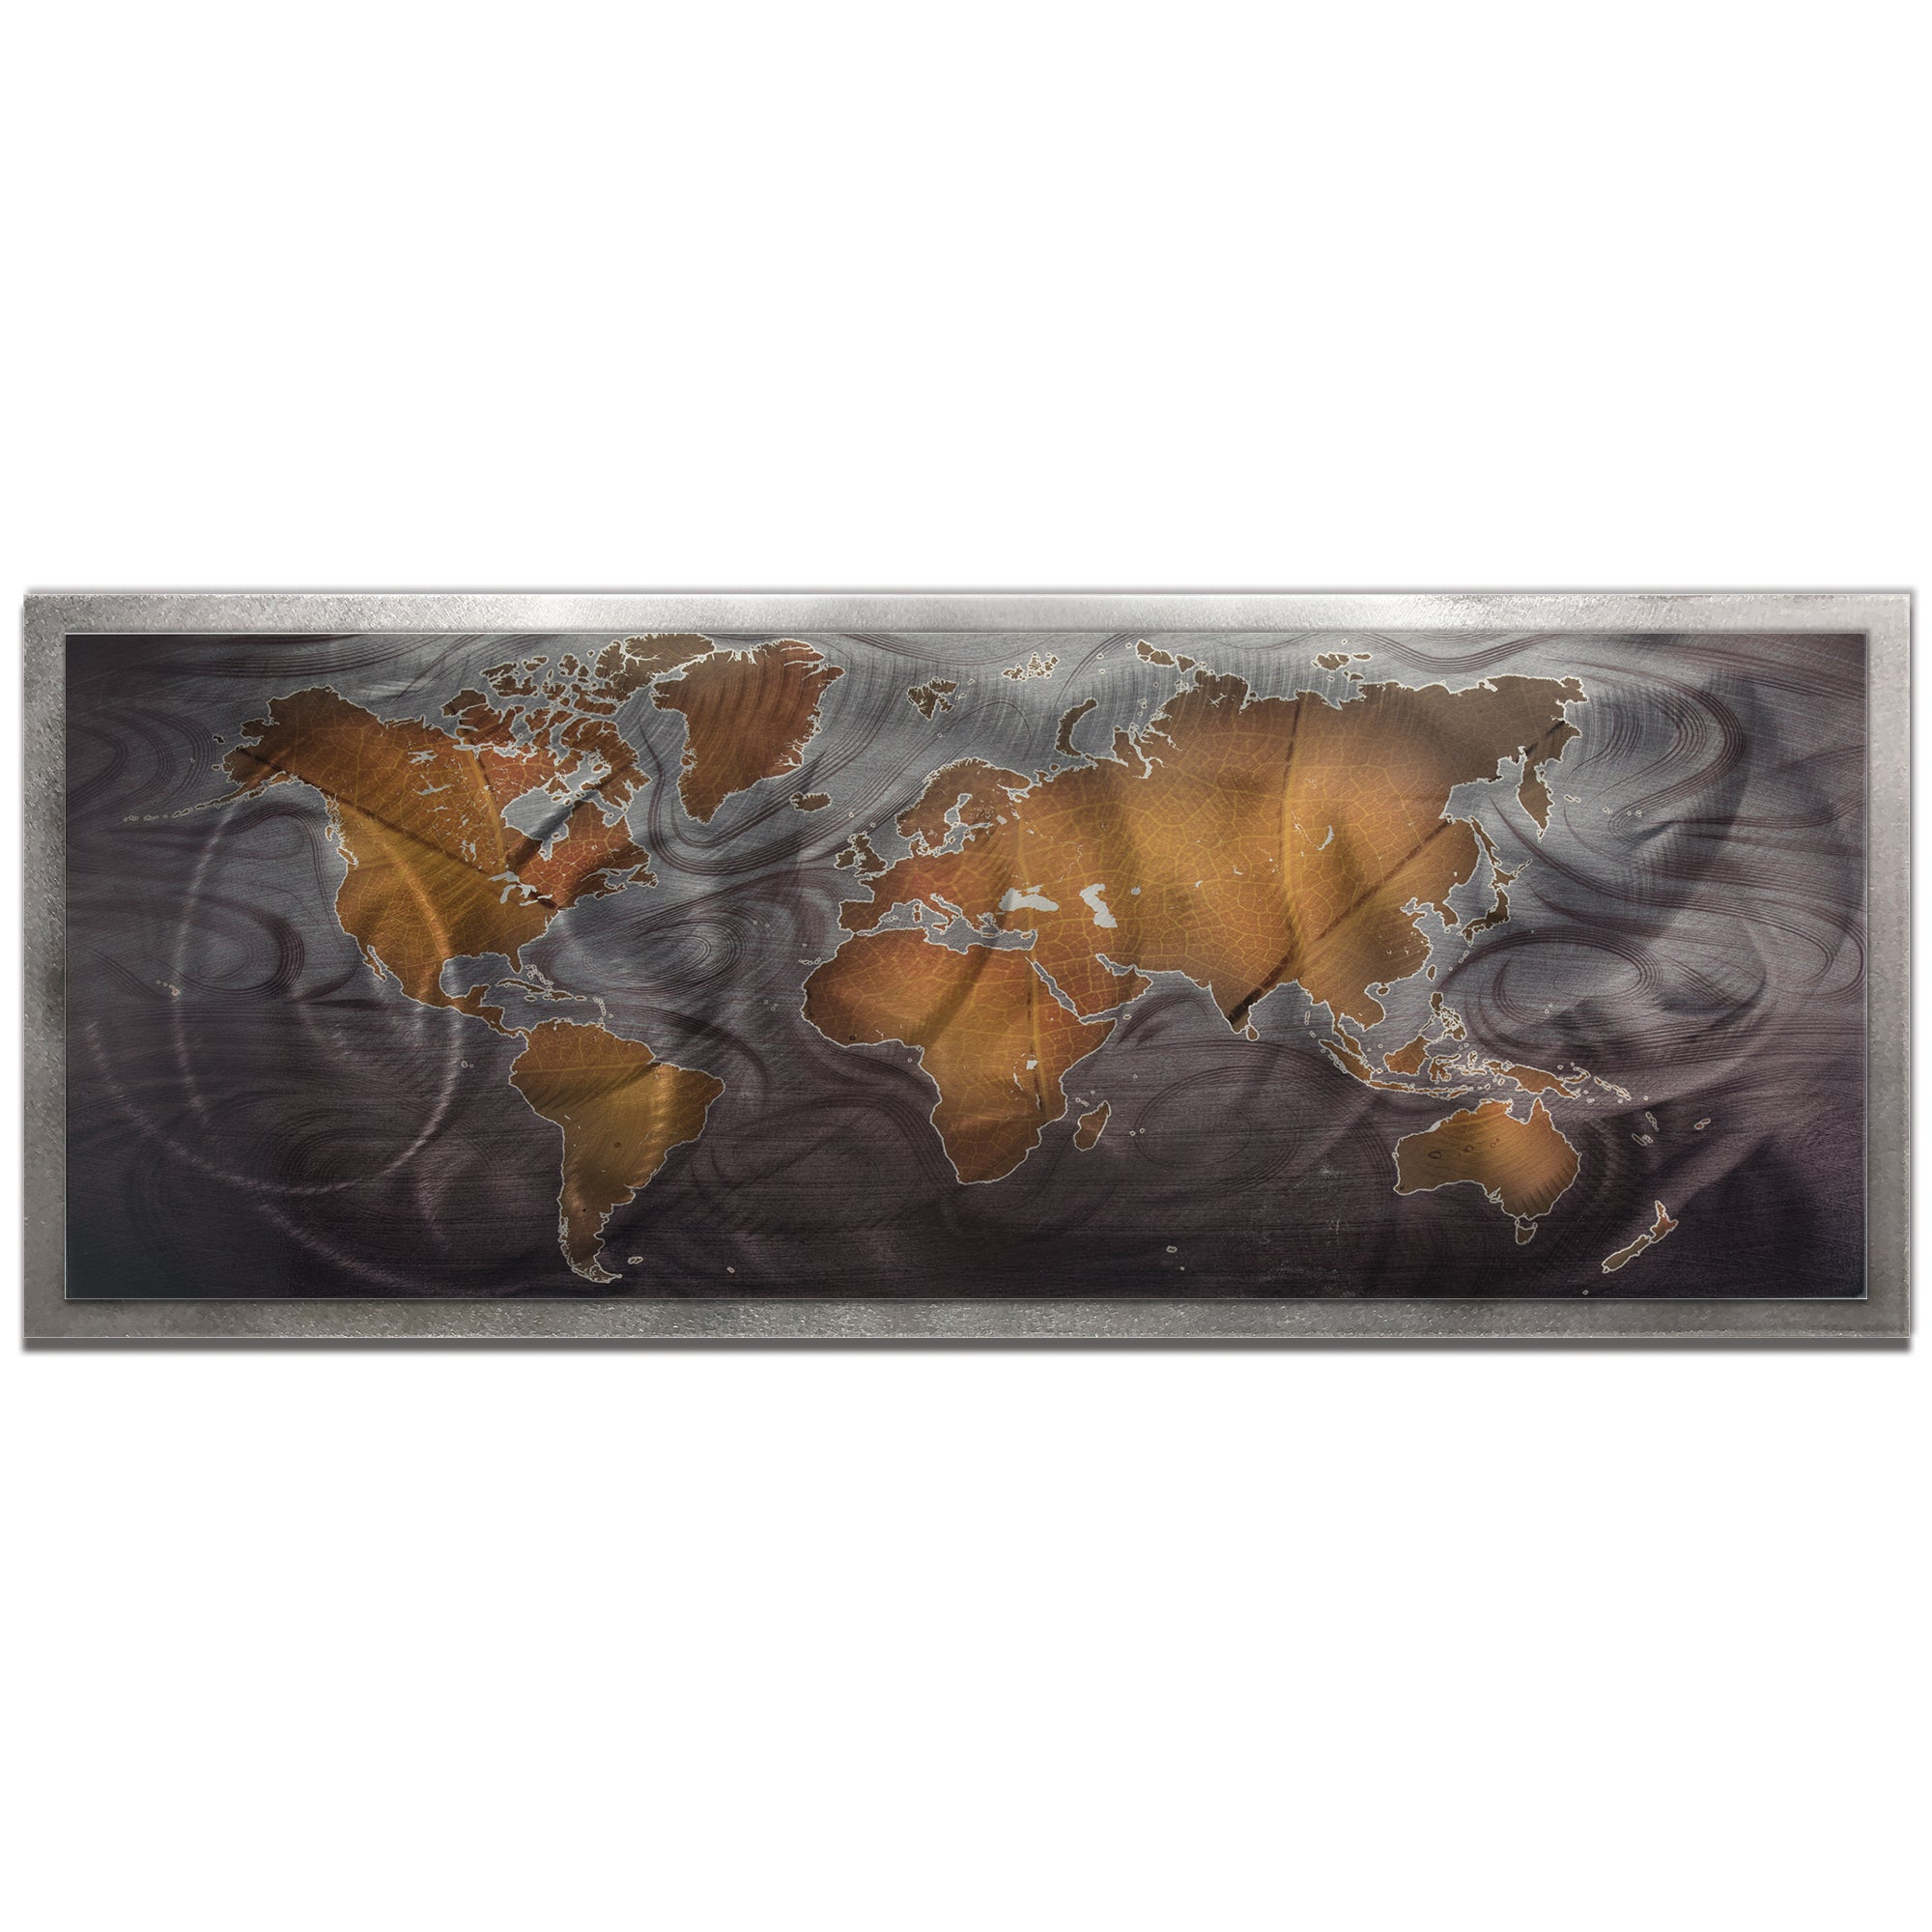 Bronze Pewter Land and Sea Framed by Amber LaRosa - Traditional World Map Art on Colored Metal